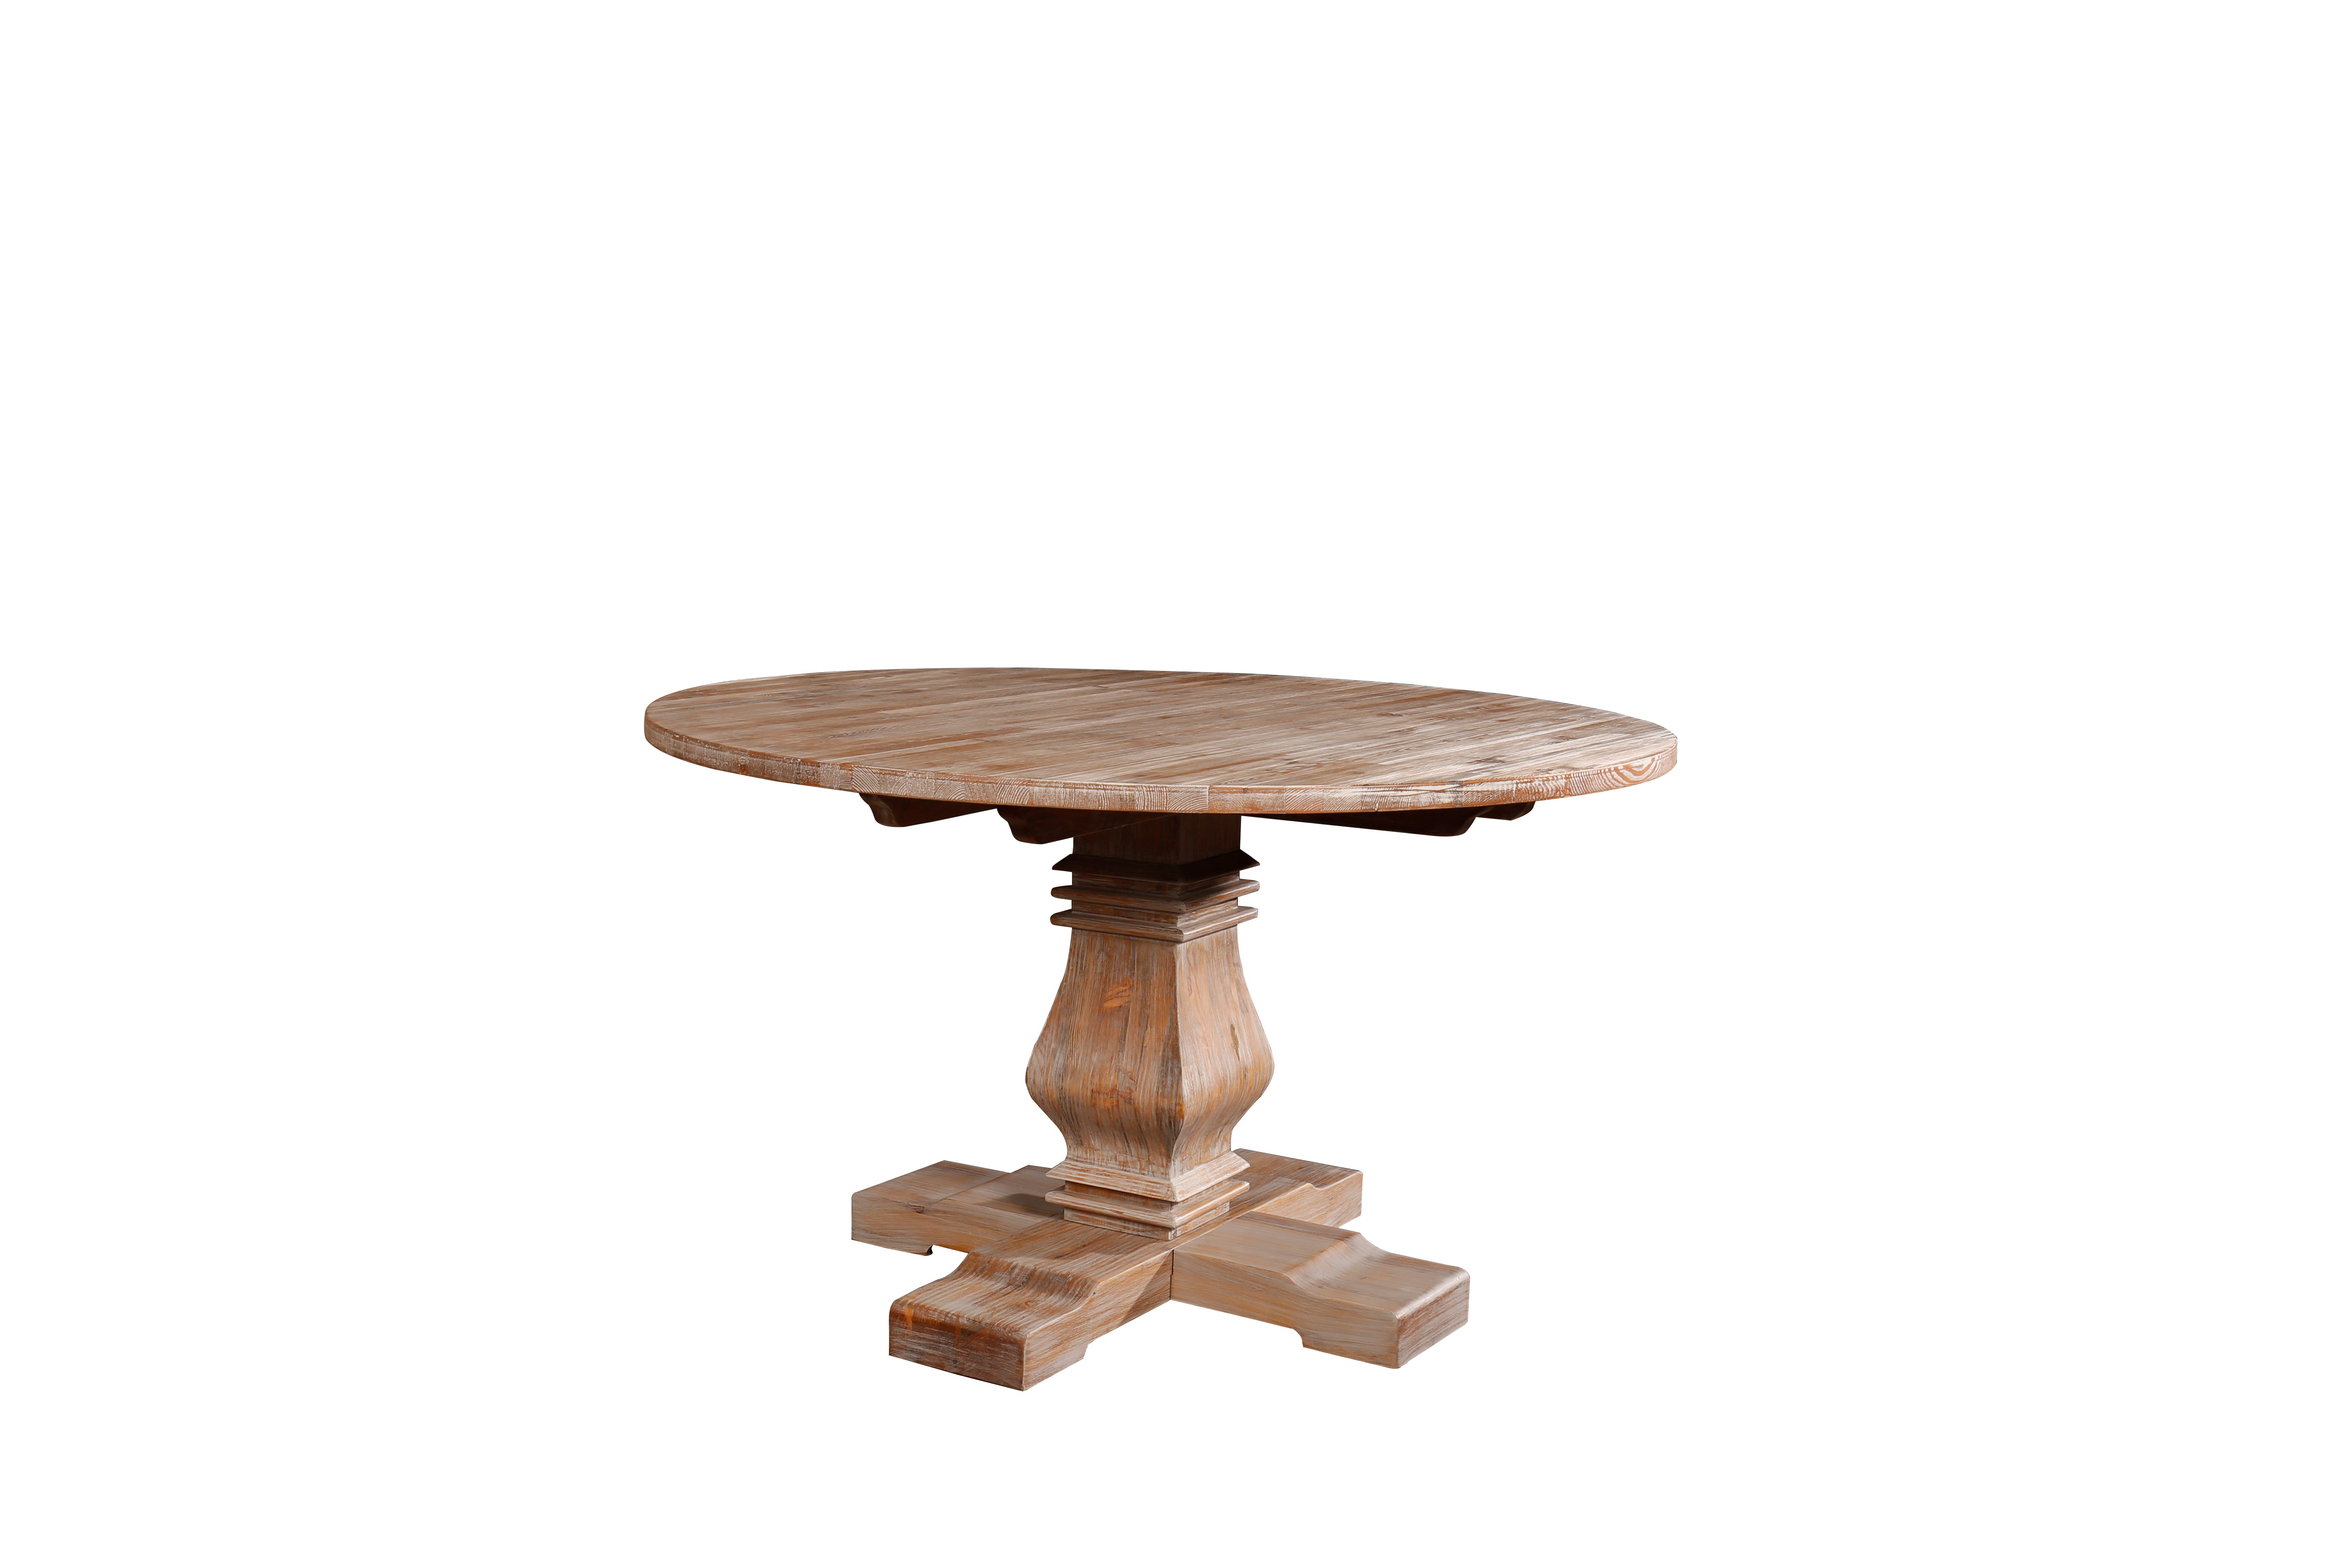 Merritt Rustic and Distressed Style Dining Room Table | Sofamania.com